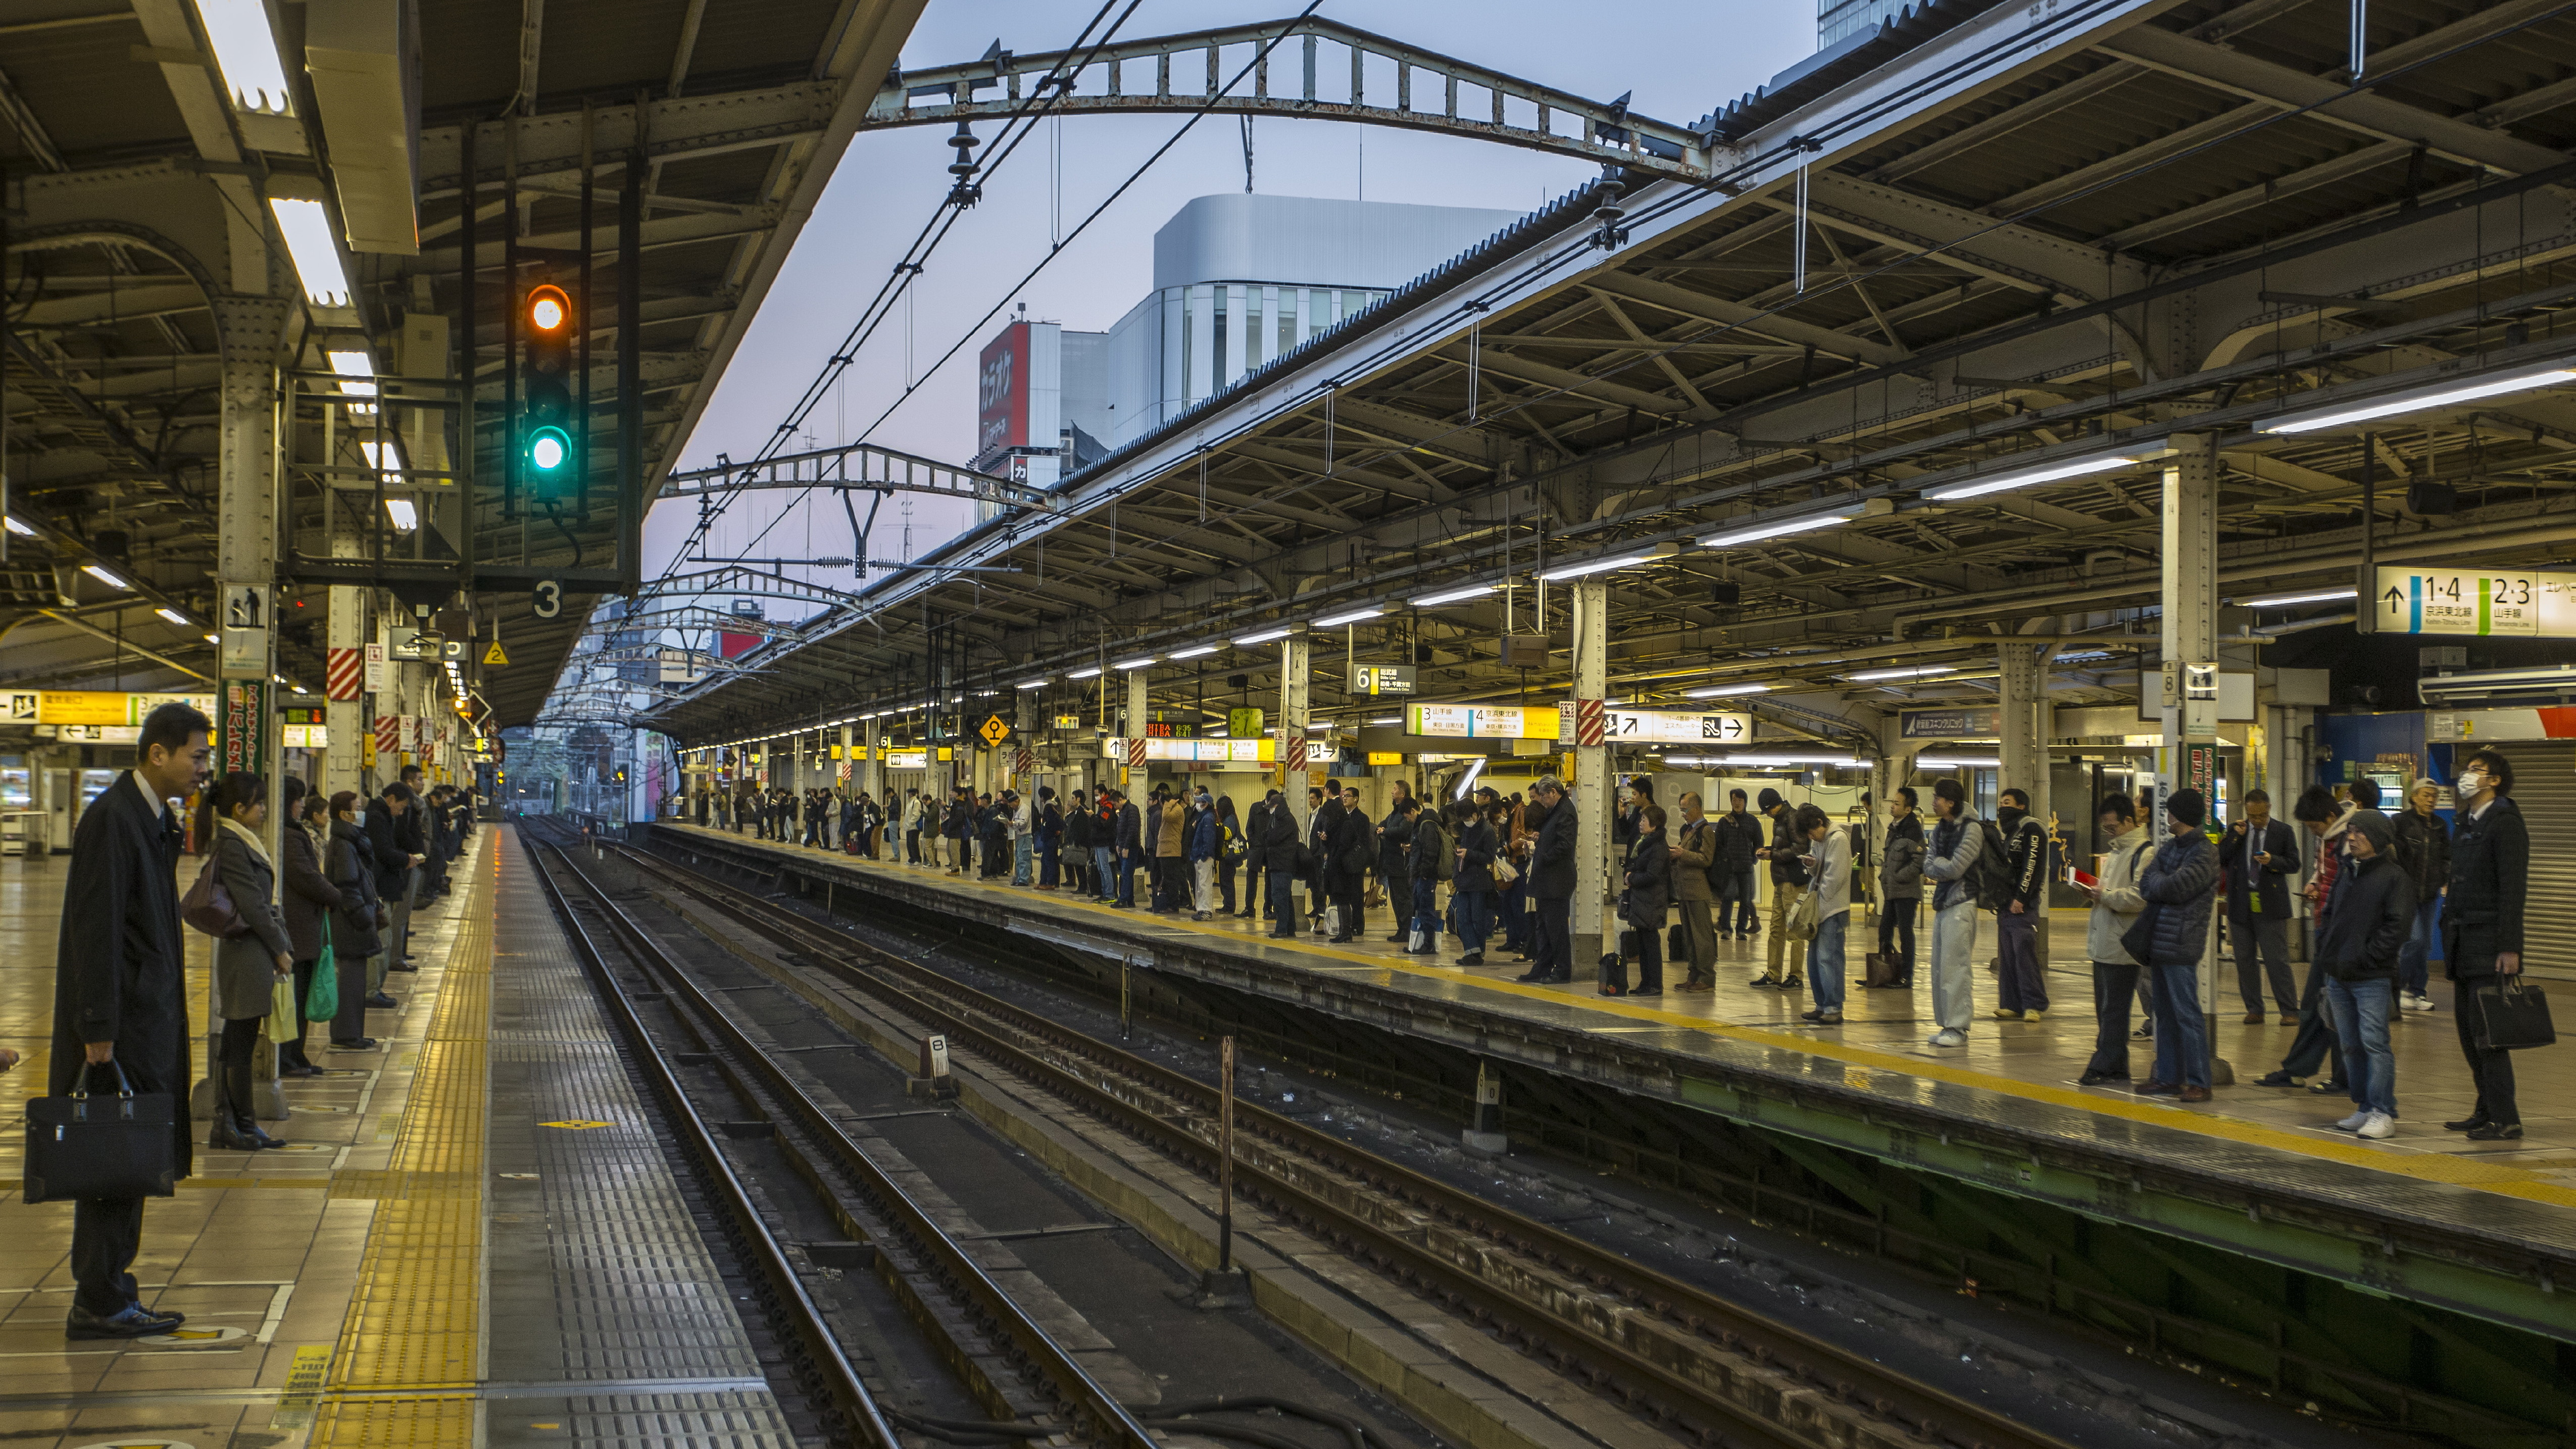 Japanese rail company apologizes after train departs 20 seconds early